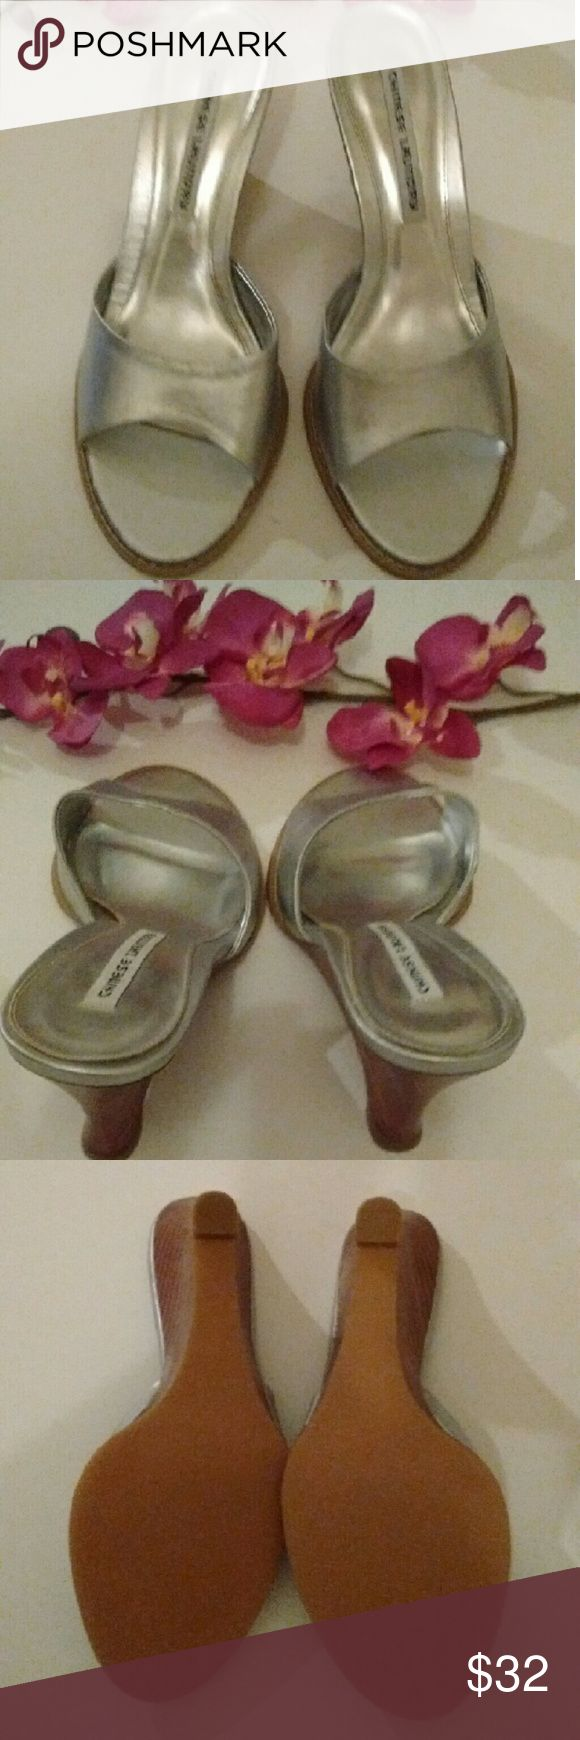 Chinese Laundry Silver Wedge Sandals NWOT. Has a comfortable rubber sole. Chinese Laundry Shoes Sandals